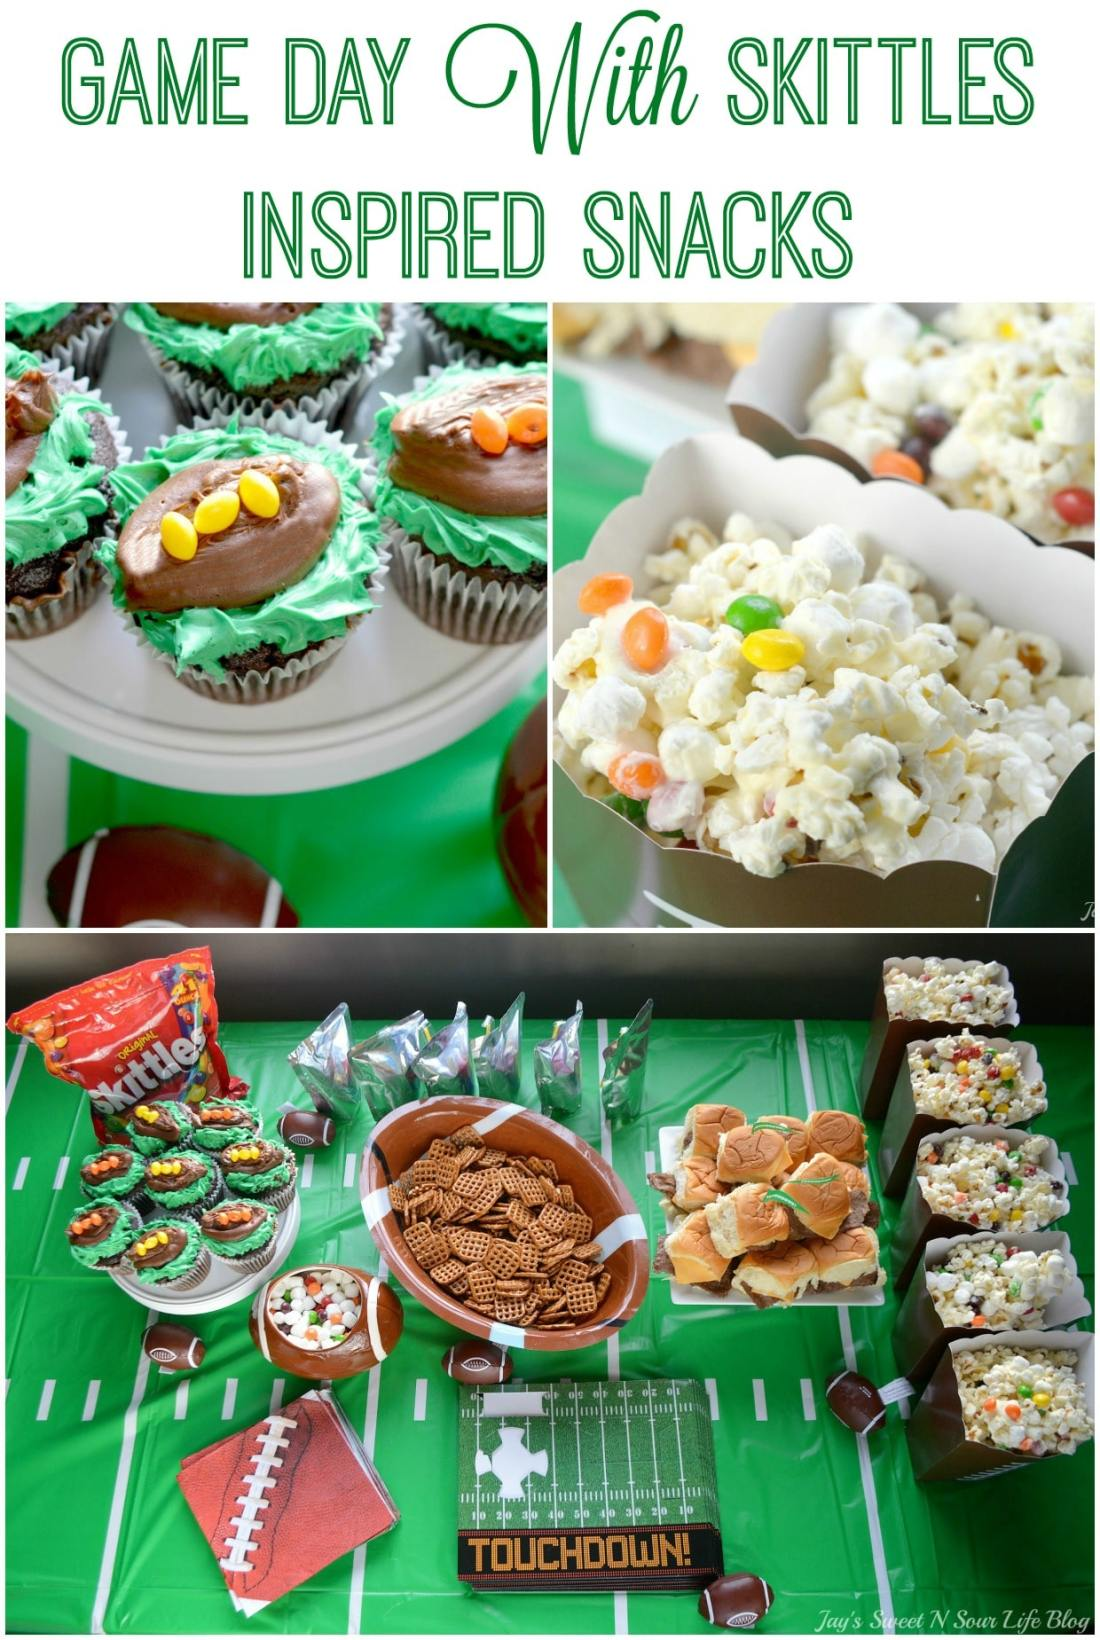 Game Day with Skittles Inspired Snacks. Game Day Skittles Inspired Snacks that all of your friends and family can enjoy! Recipes include skittles popcorn, football cupcakes and more!